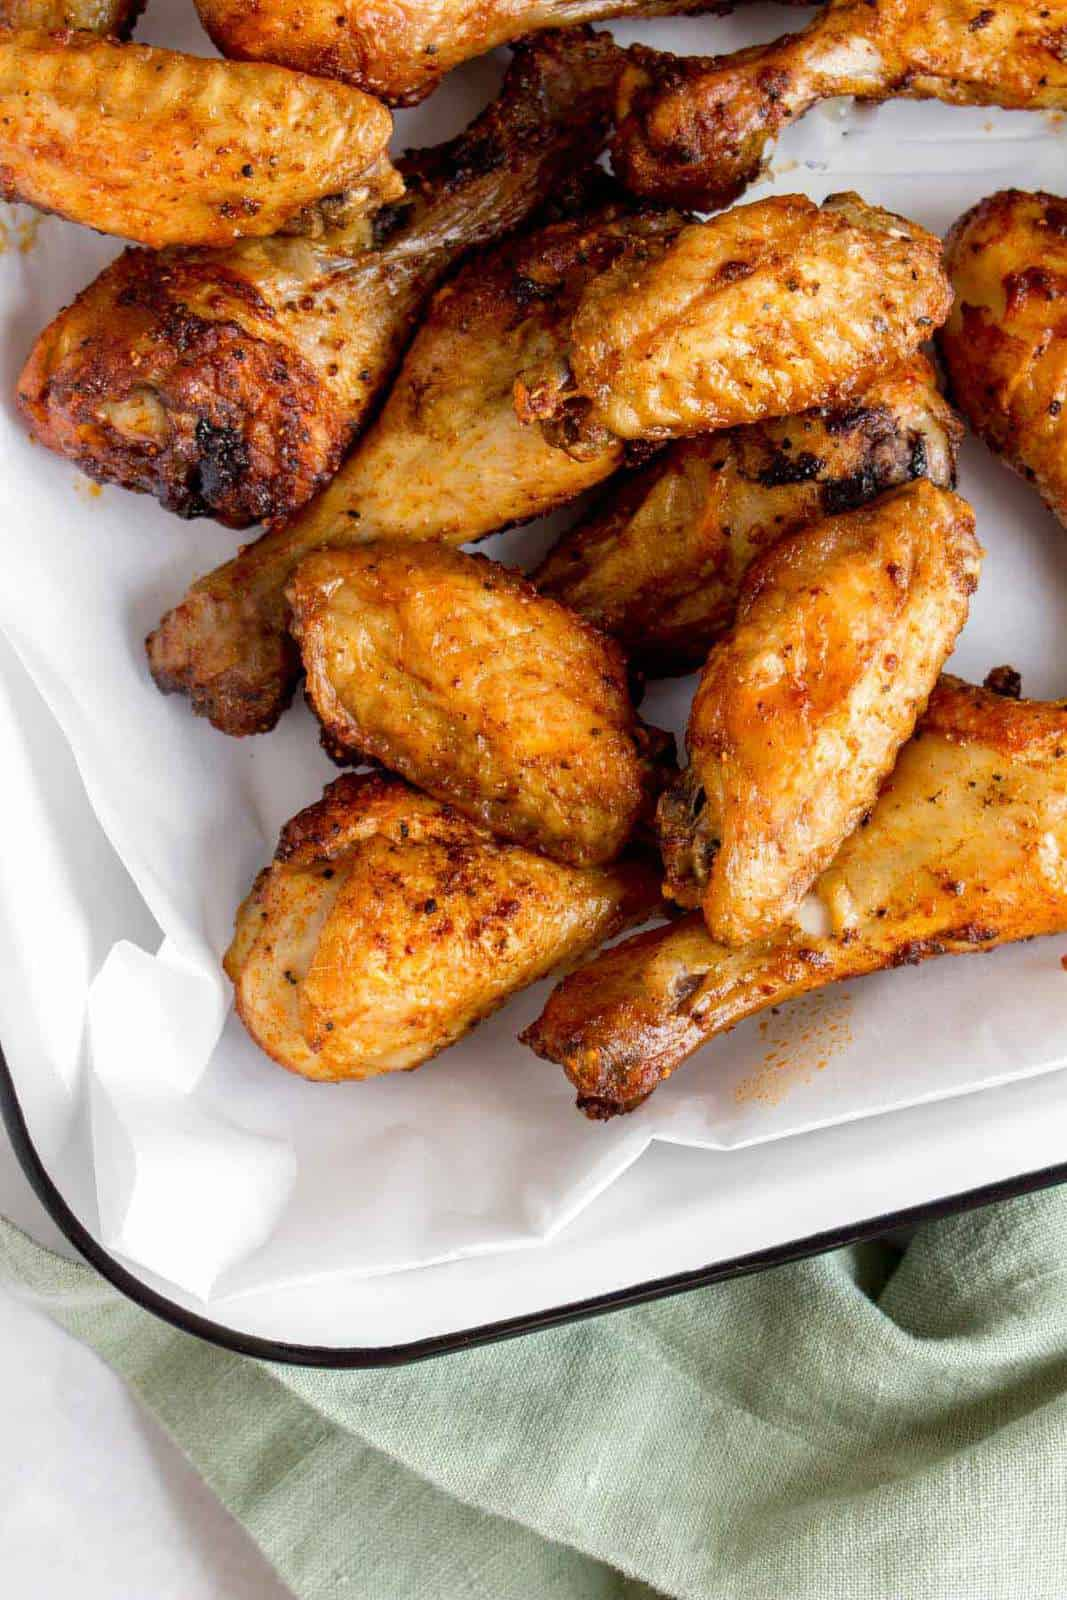 Close up of air fryer chicken wings in a serving platter.